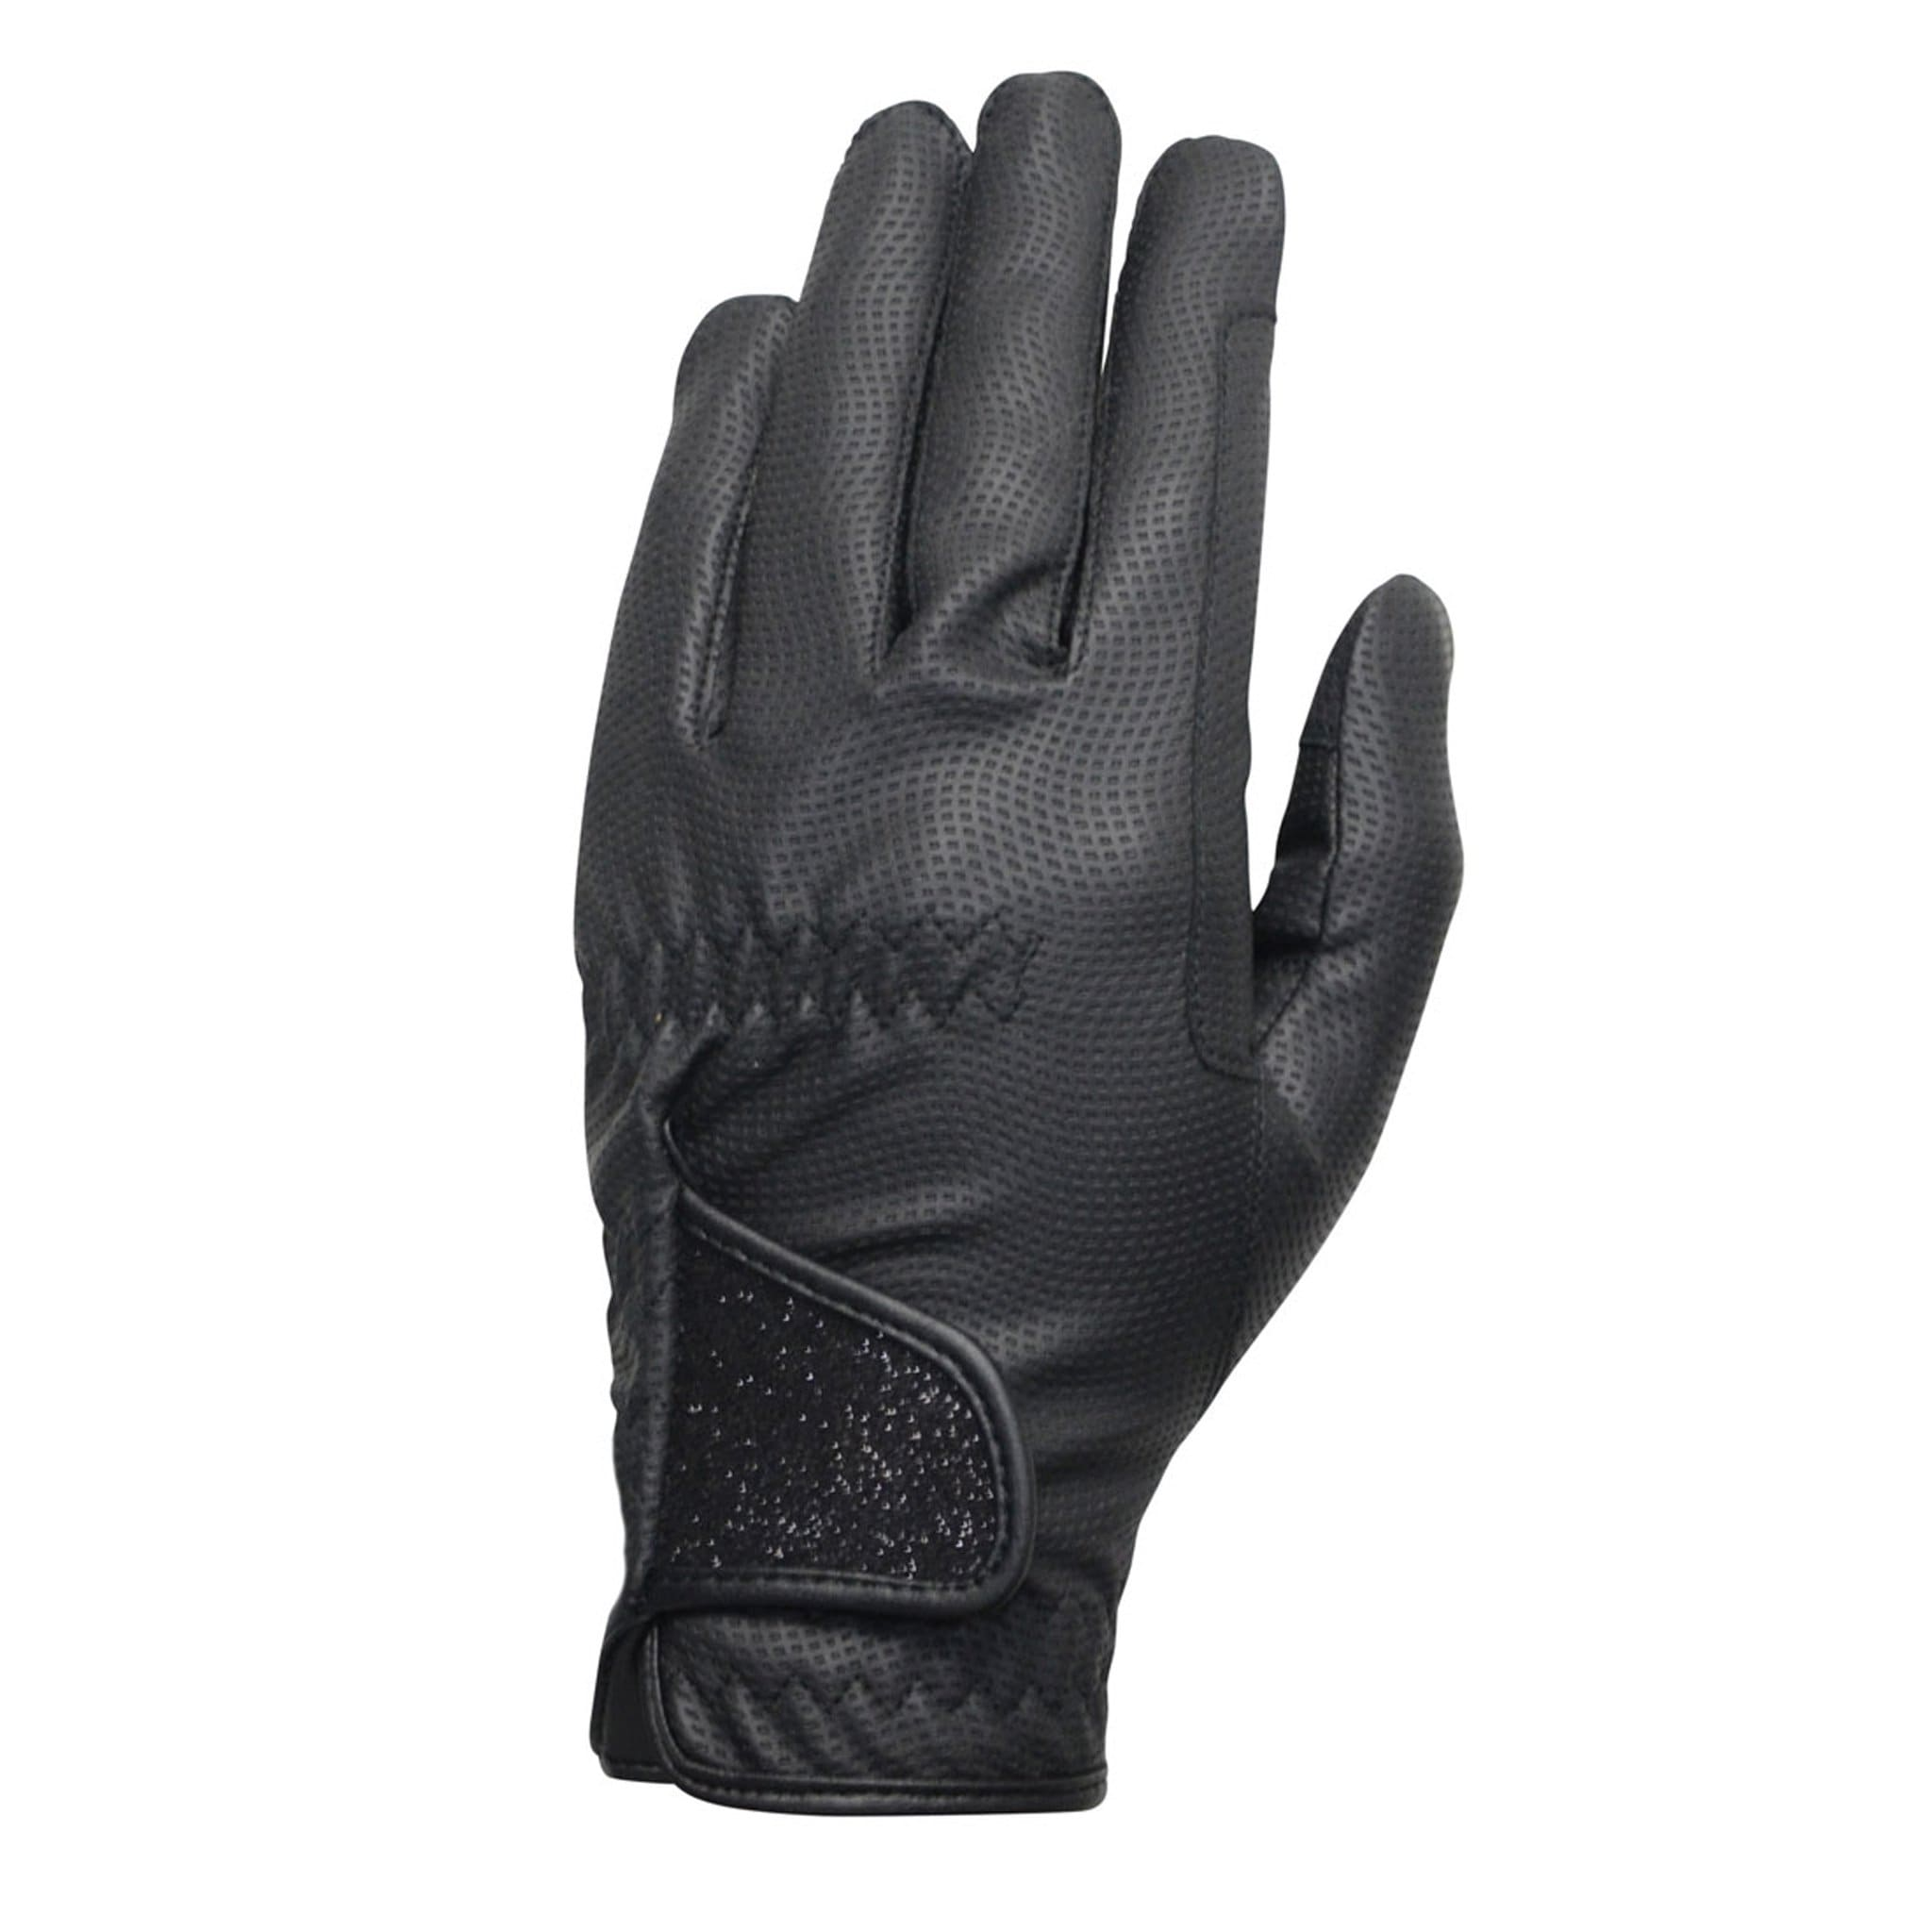 Hy5 Roka Advanced Riding Gloves Black 24115.